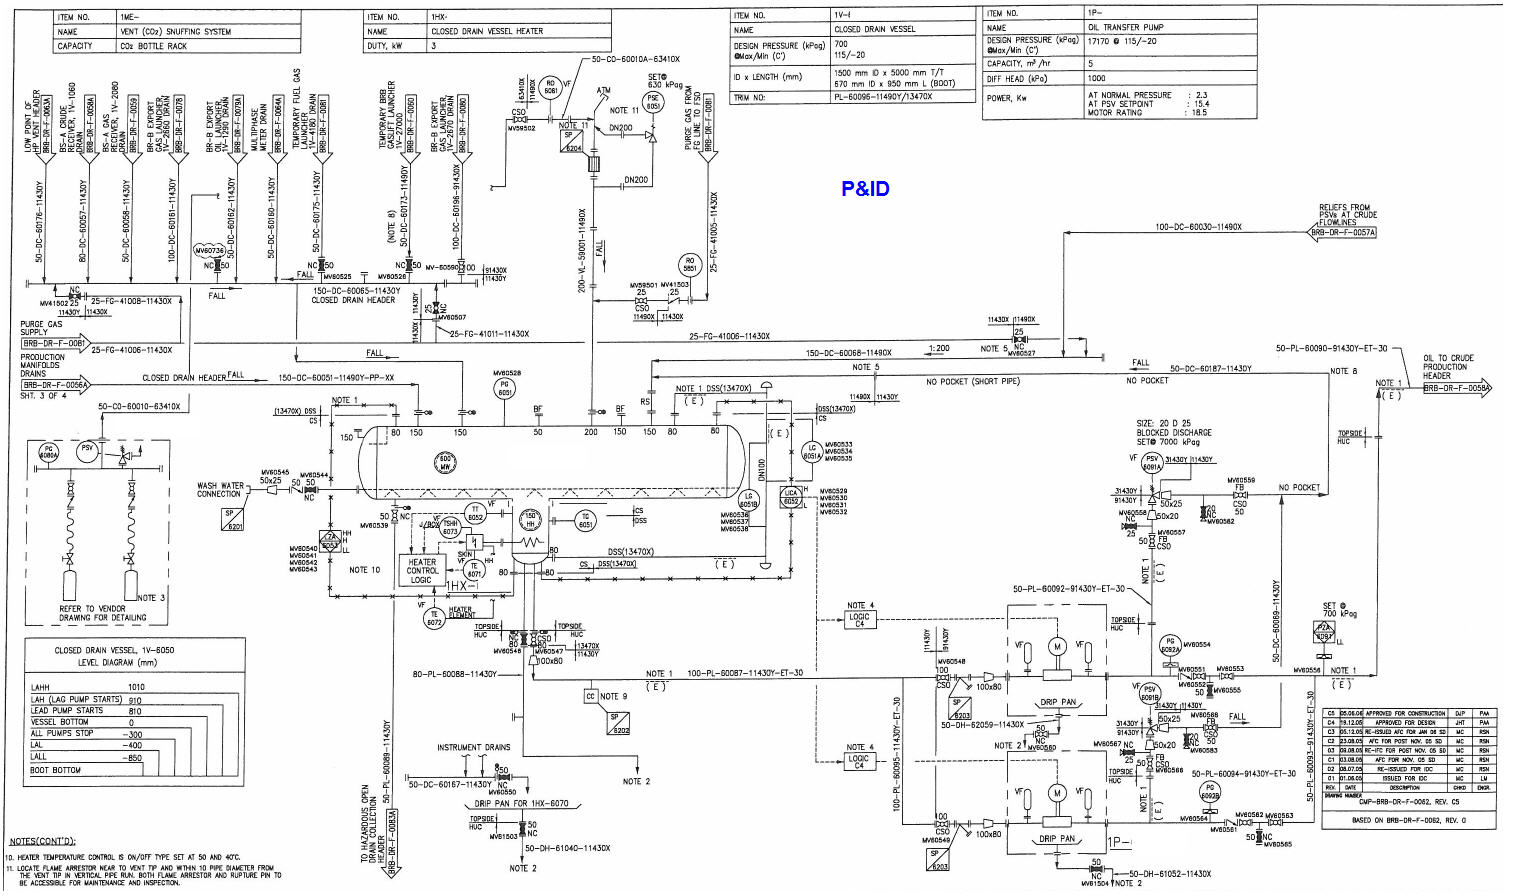 Process and instrument Diagram - Piping Design